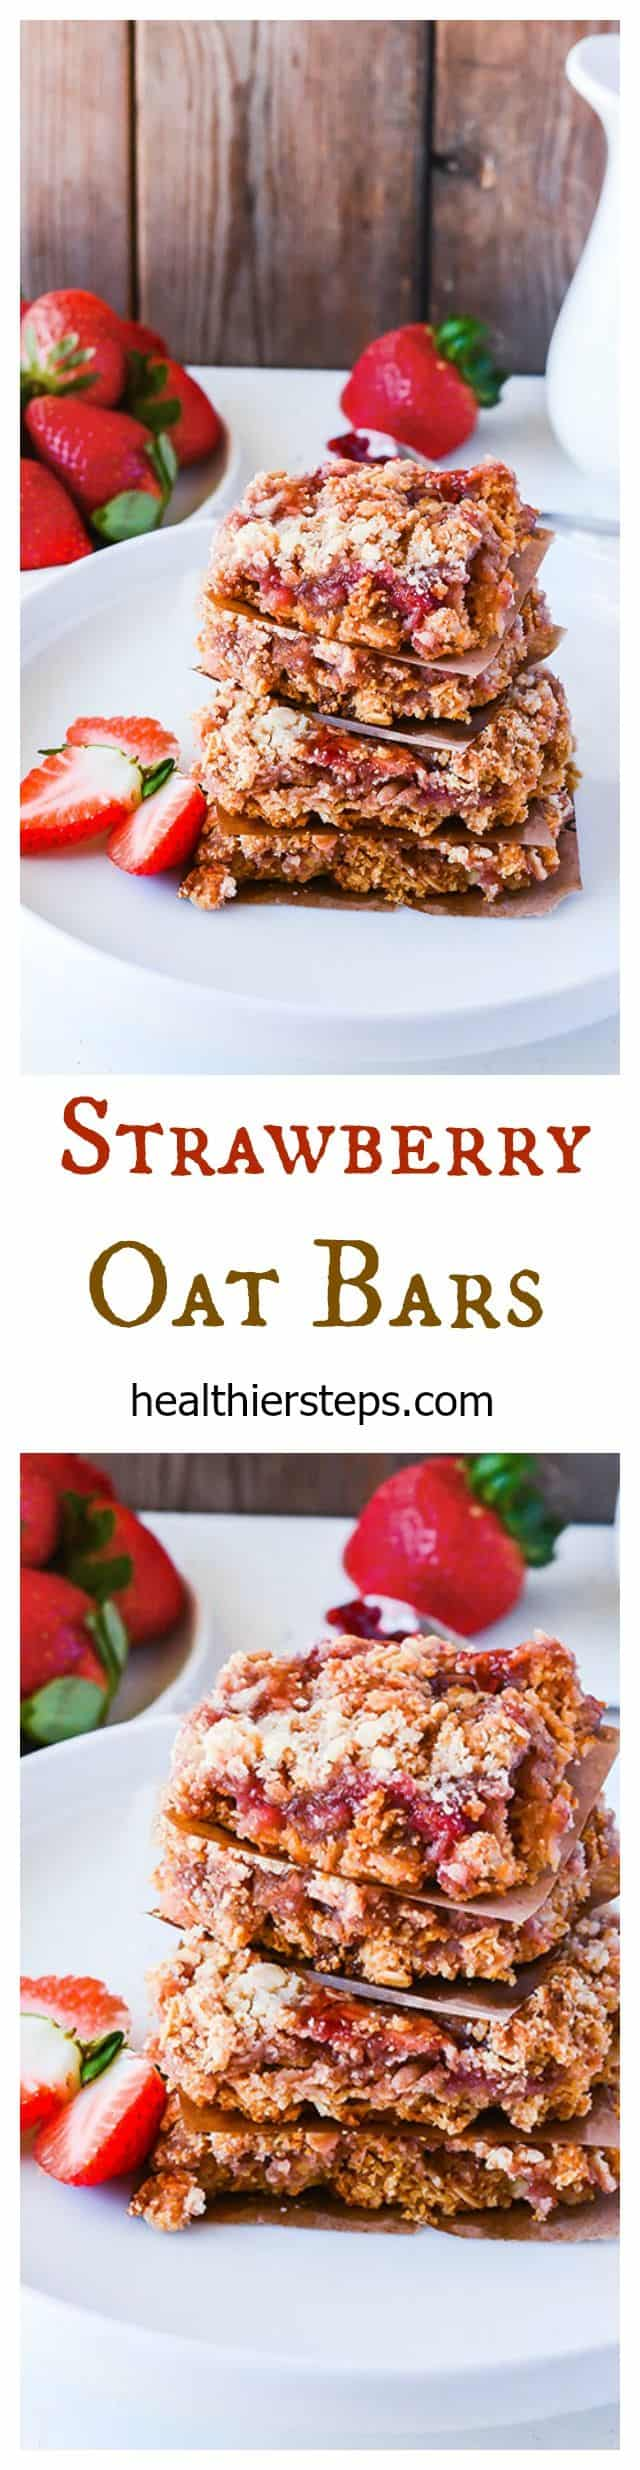 Strawberry Oat Bars (Gluten-Free Vegan)